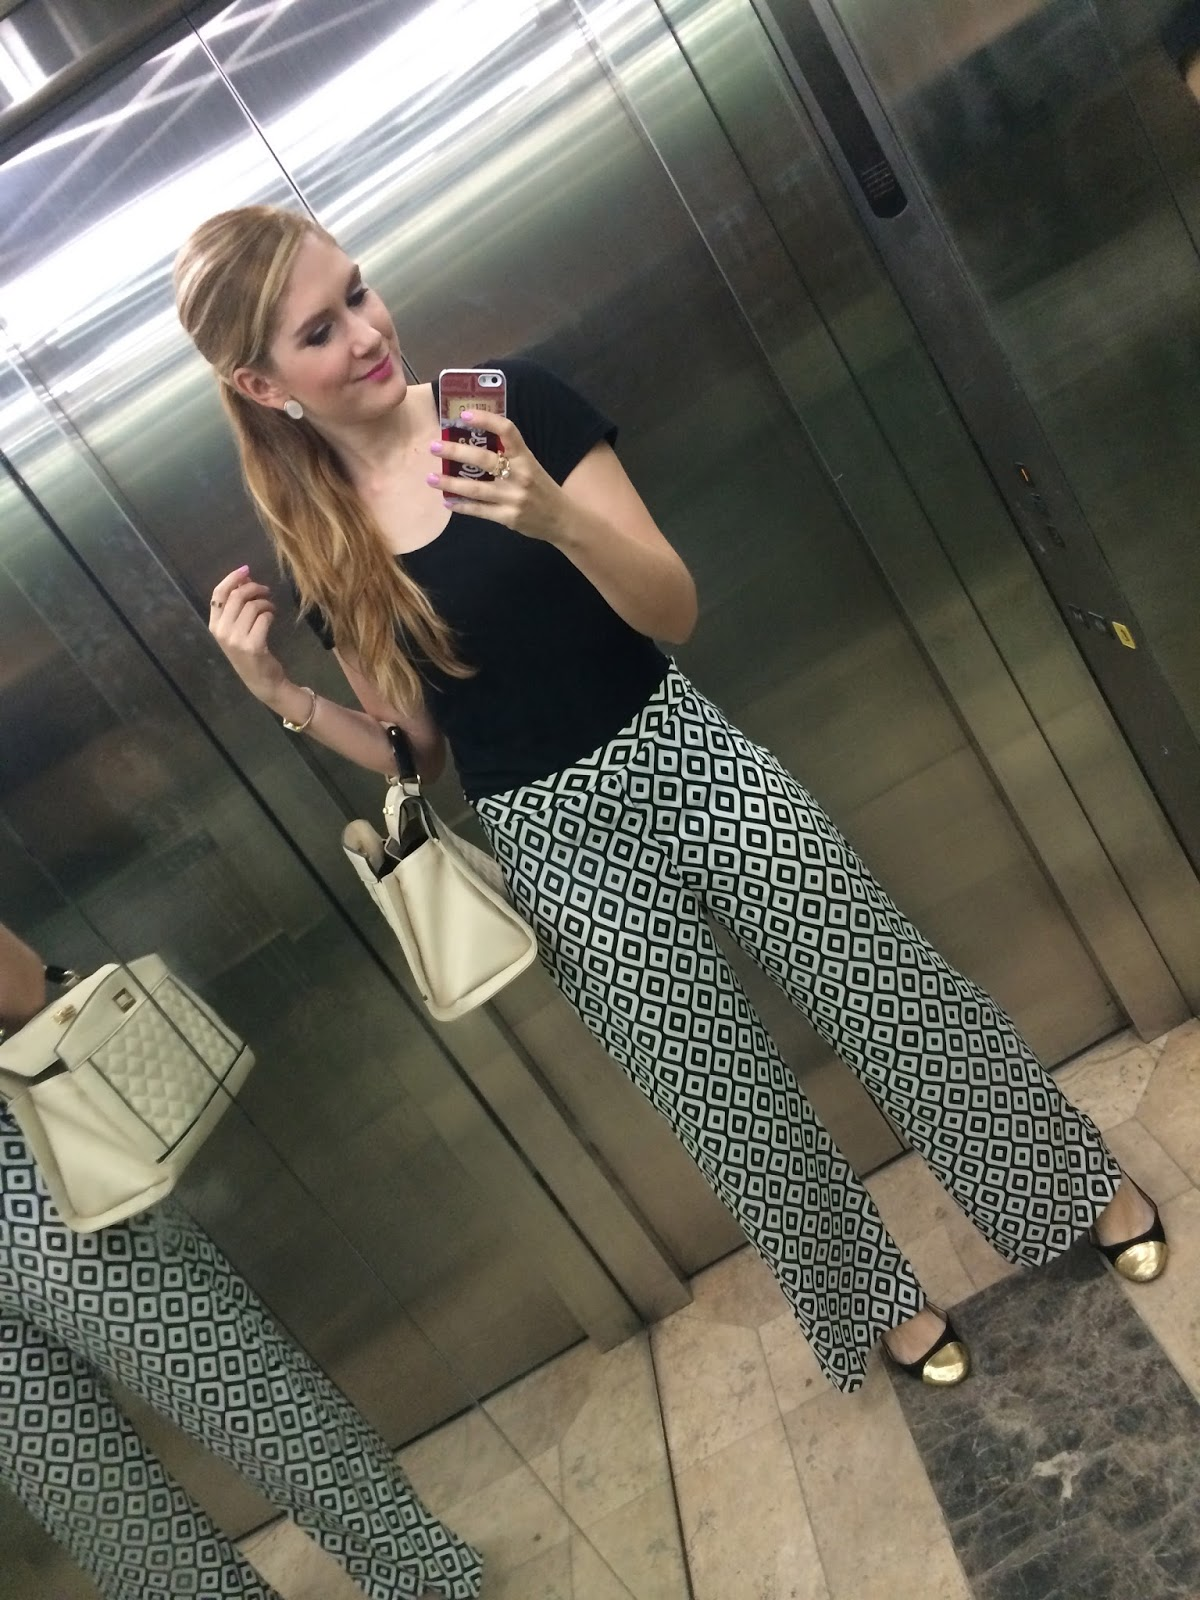 Wear patterned pants to work to show your personality!